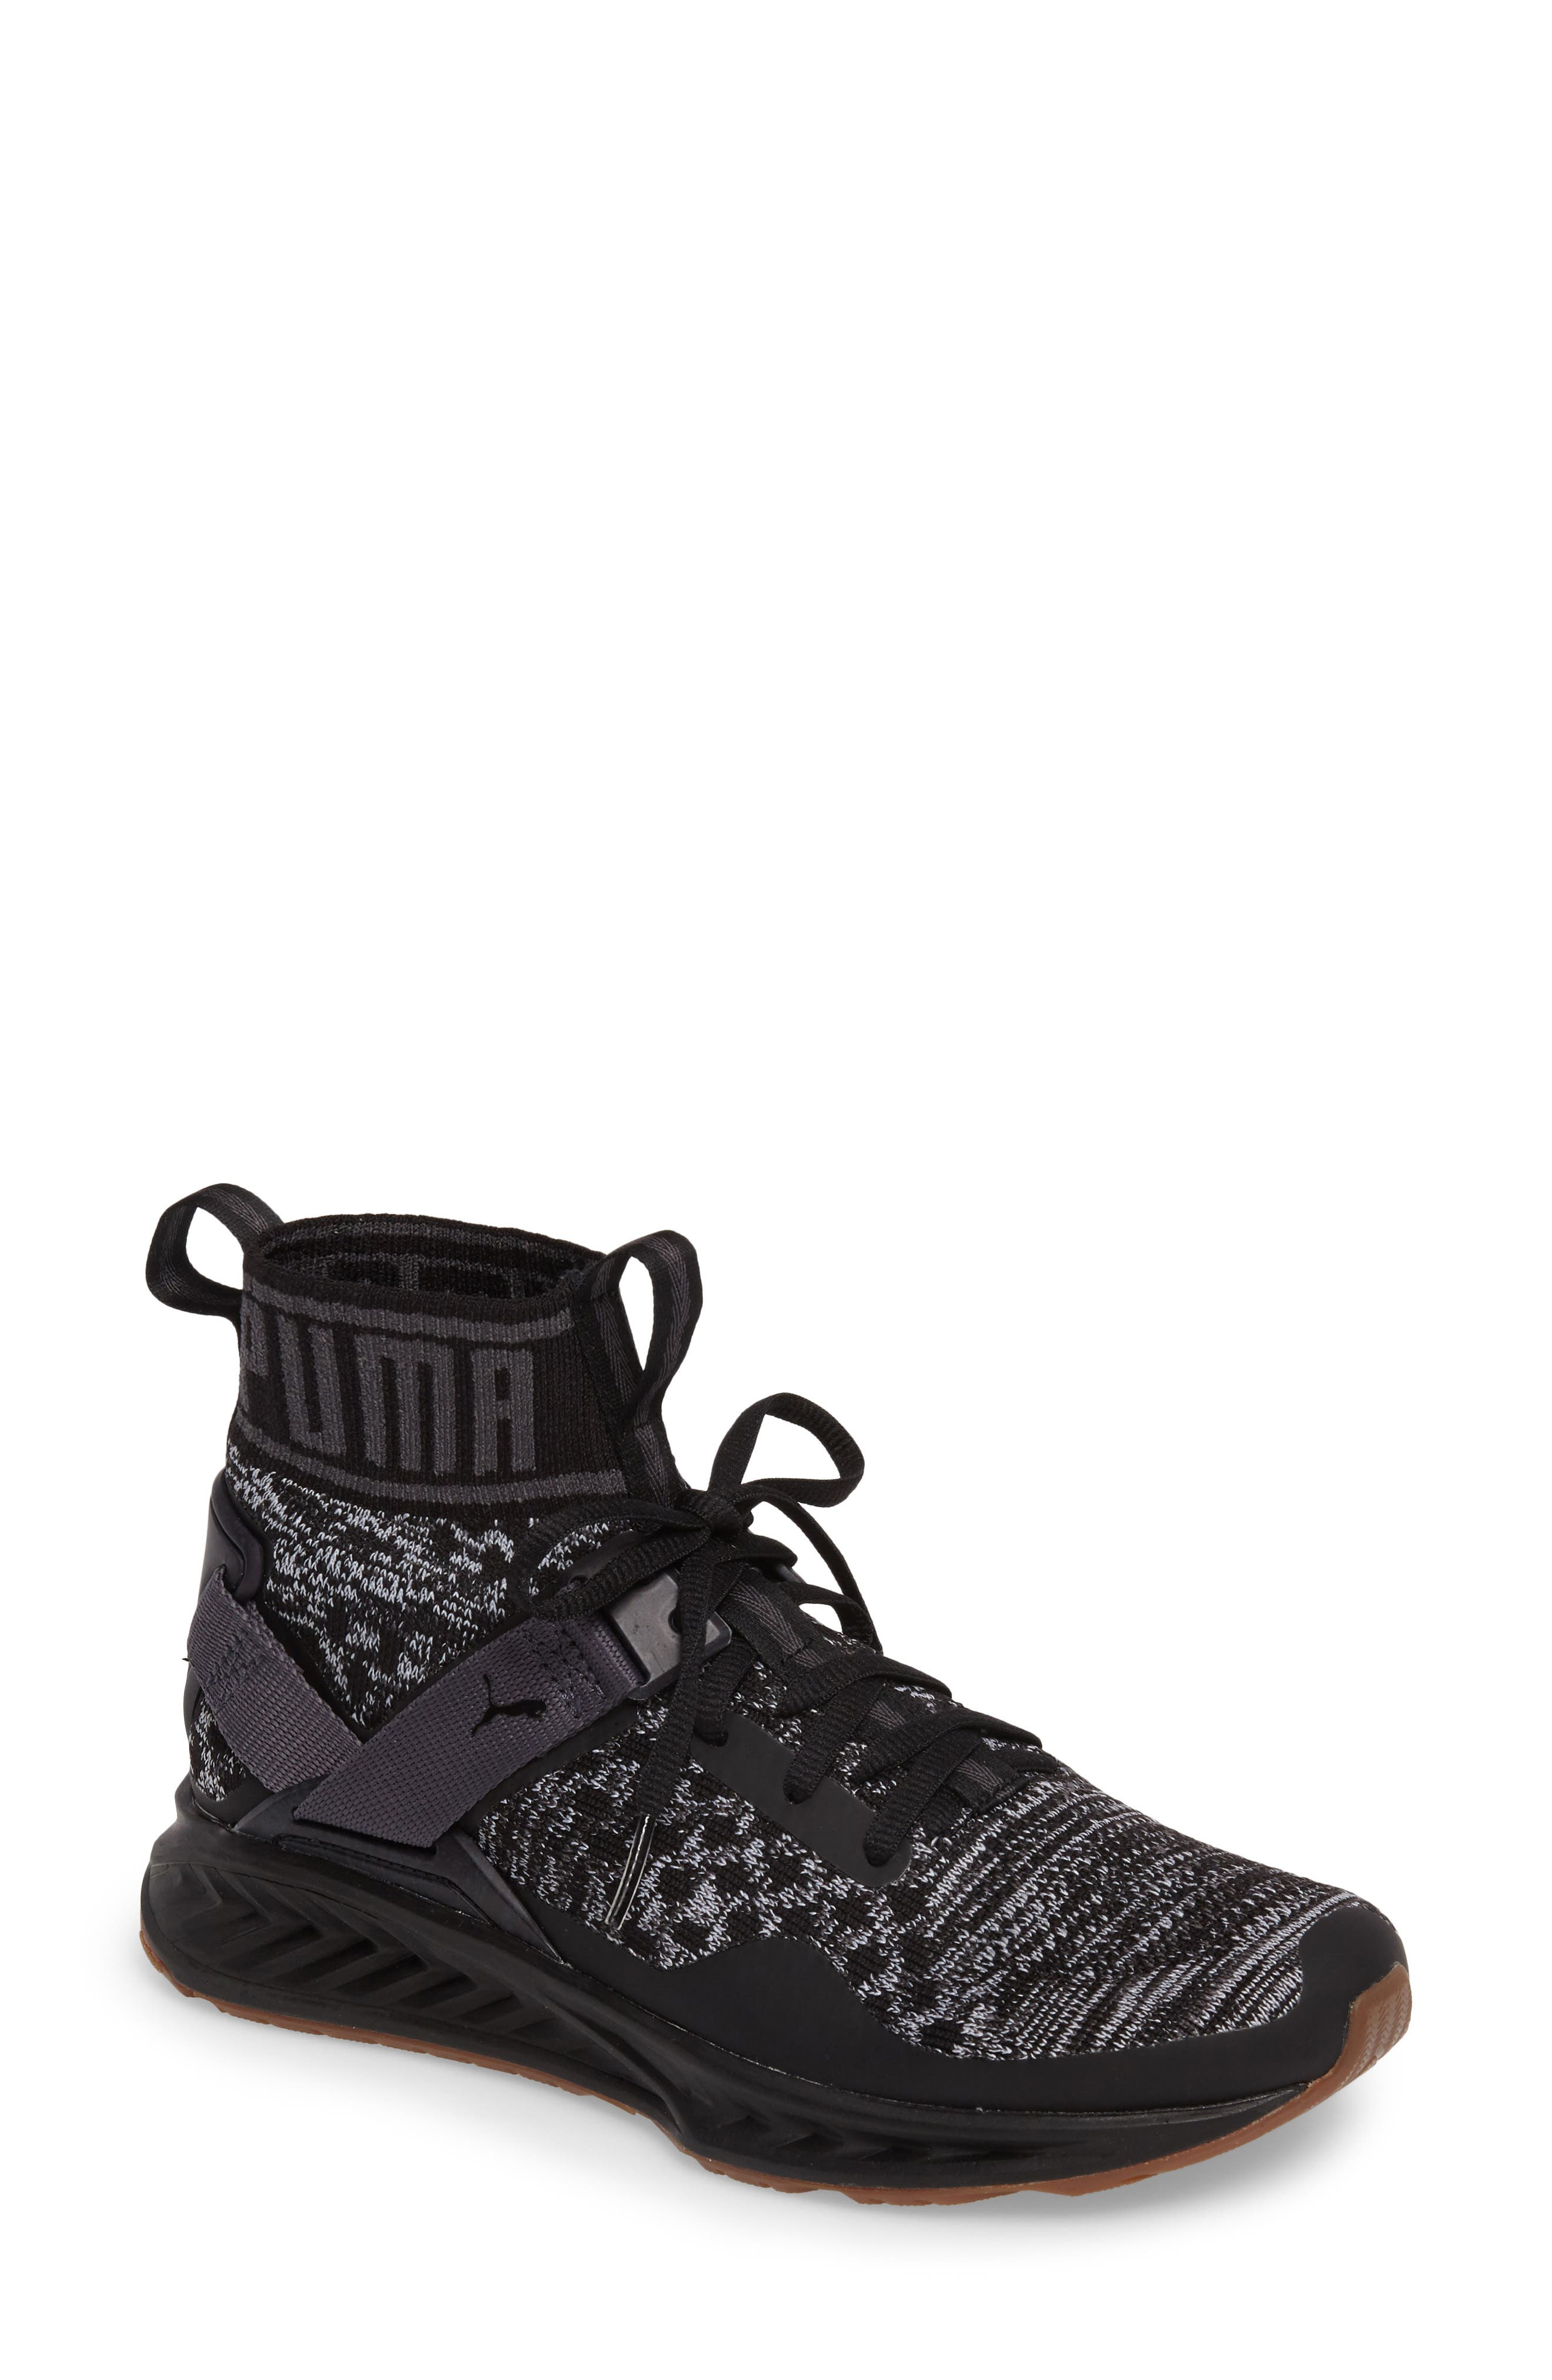 Alternate Image 1 Selected - PUMA IGNITE evoKNIT Running Shoe (Women)